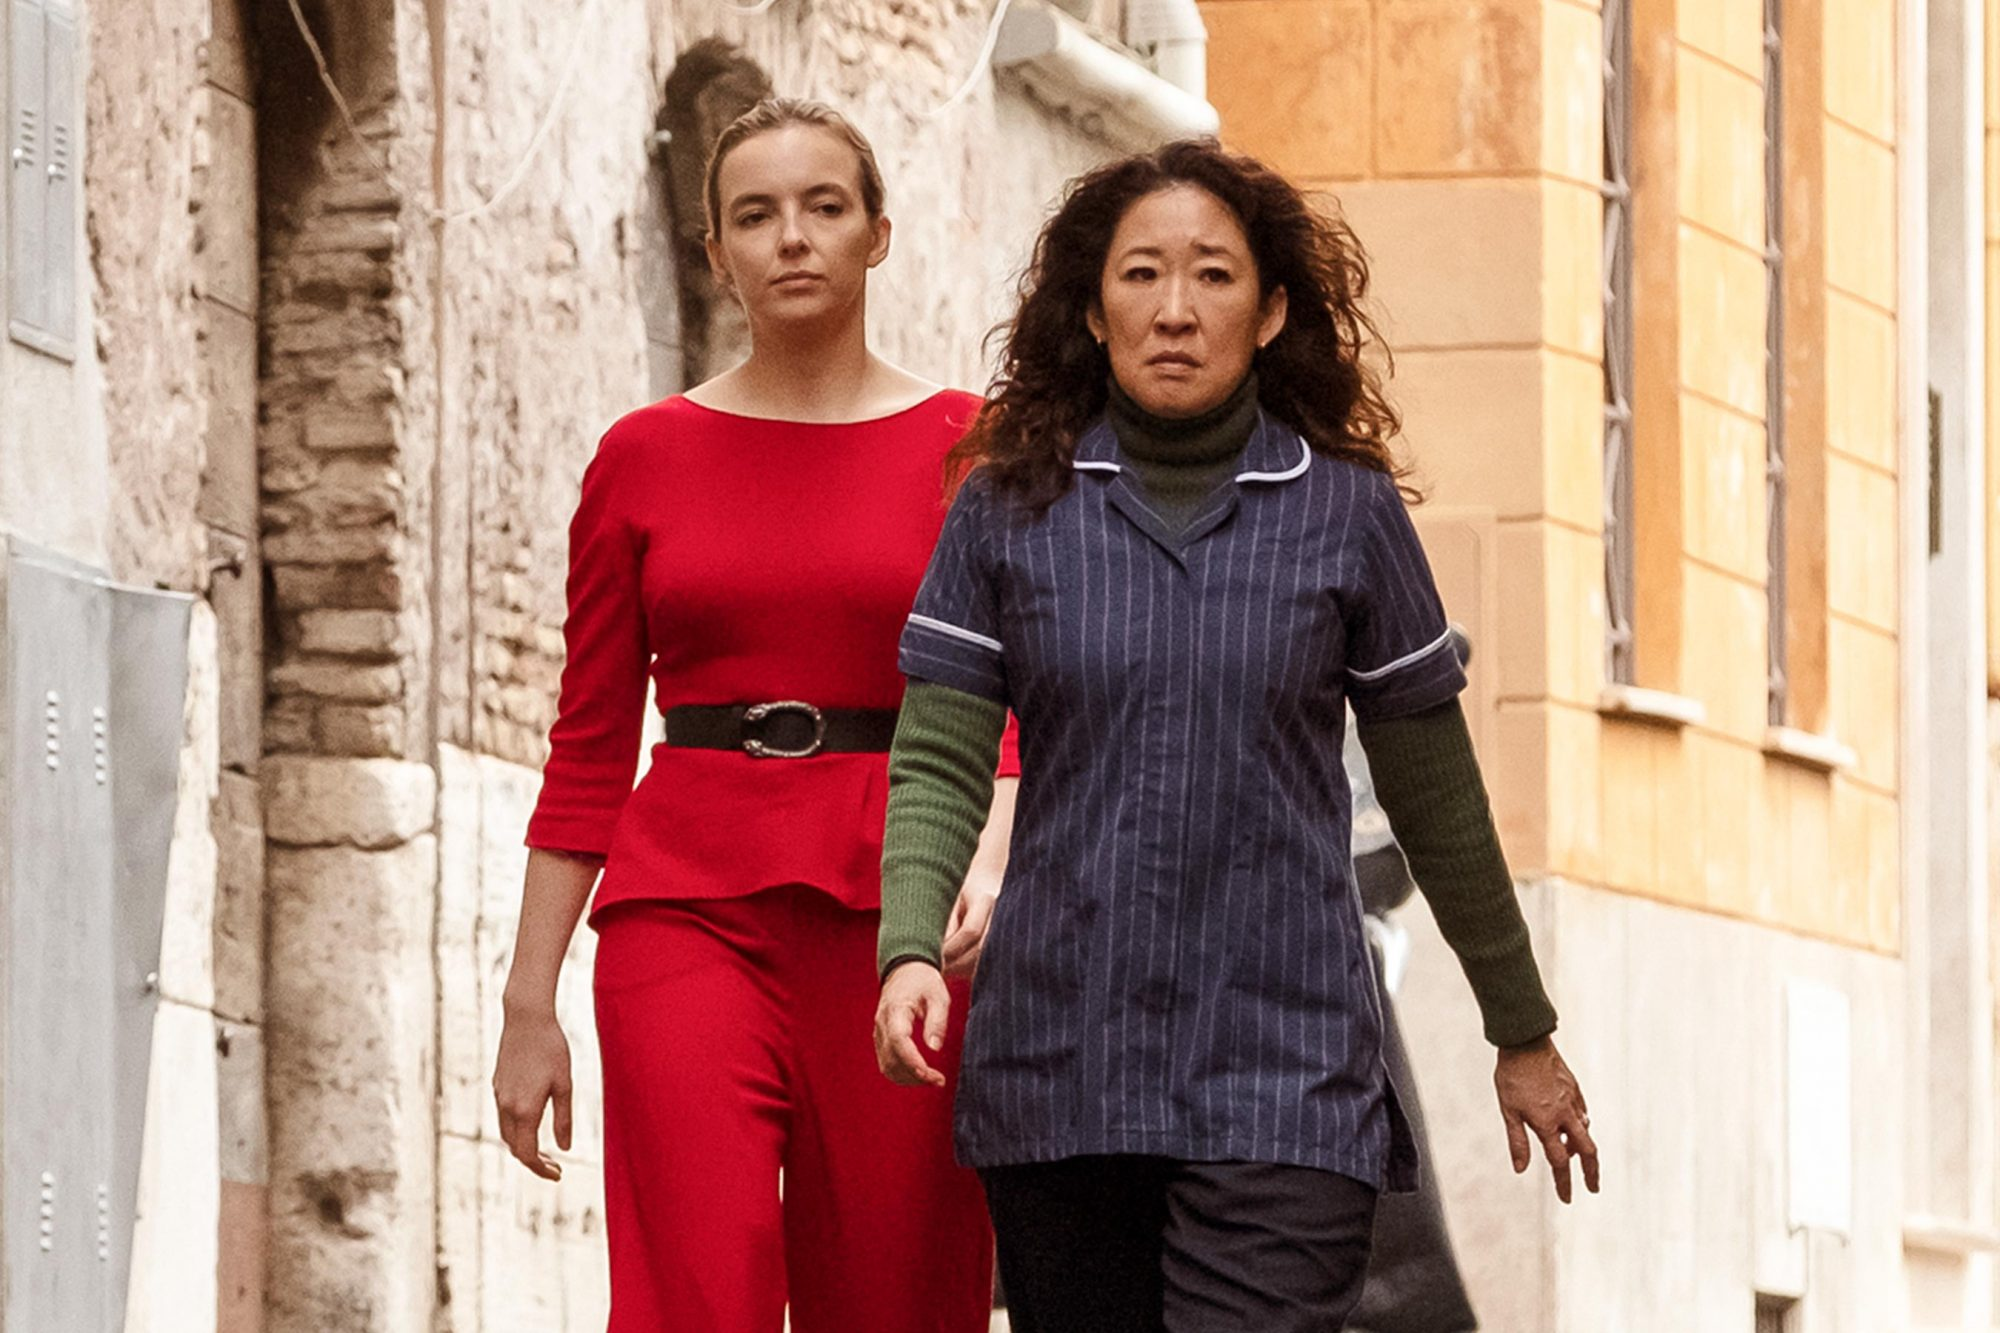 Jodie Comer as Villanelle, Sandra Oh as Eve Polastri - Killing Eve _ Season 2, Episode 8 - Photo Credit: Gareth Gatrell/BBCAmerica